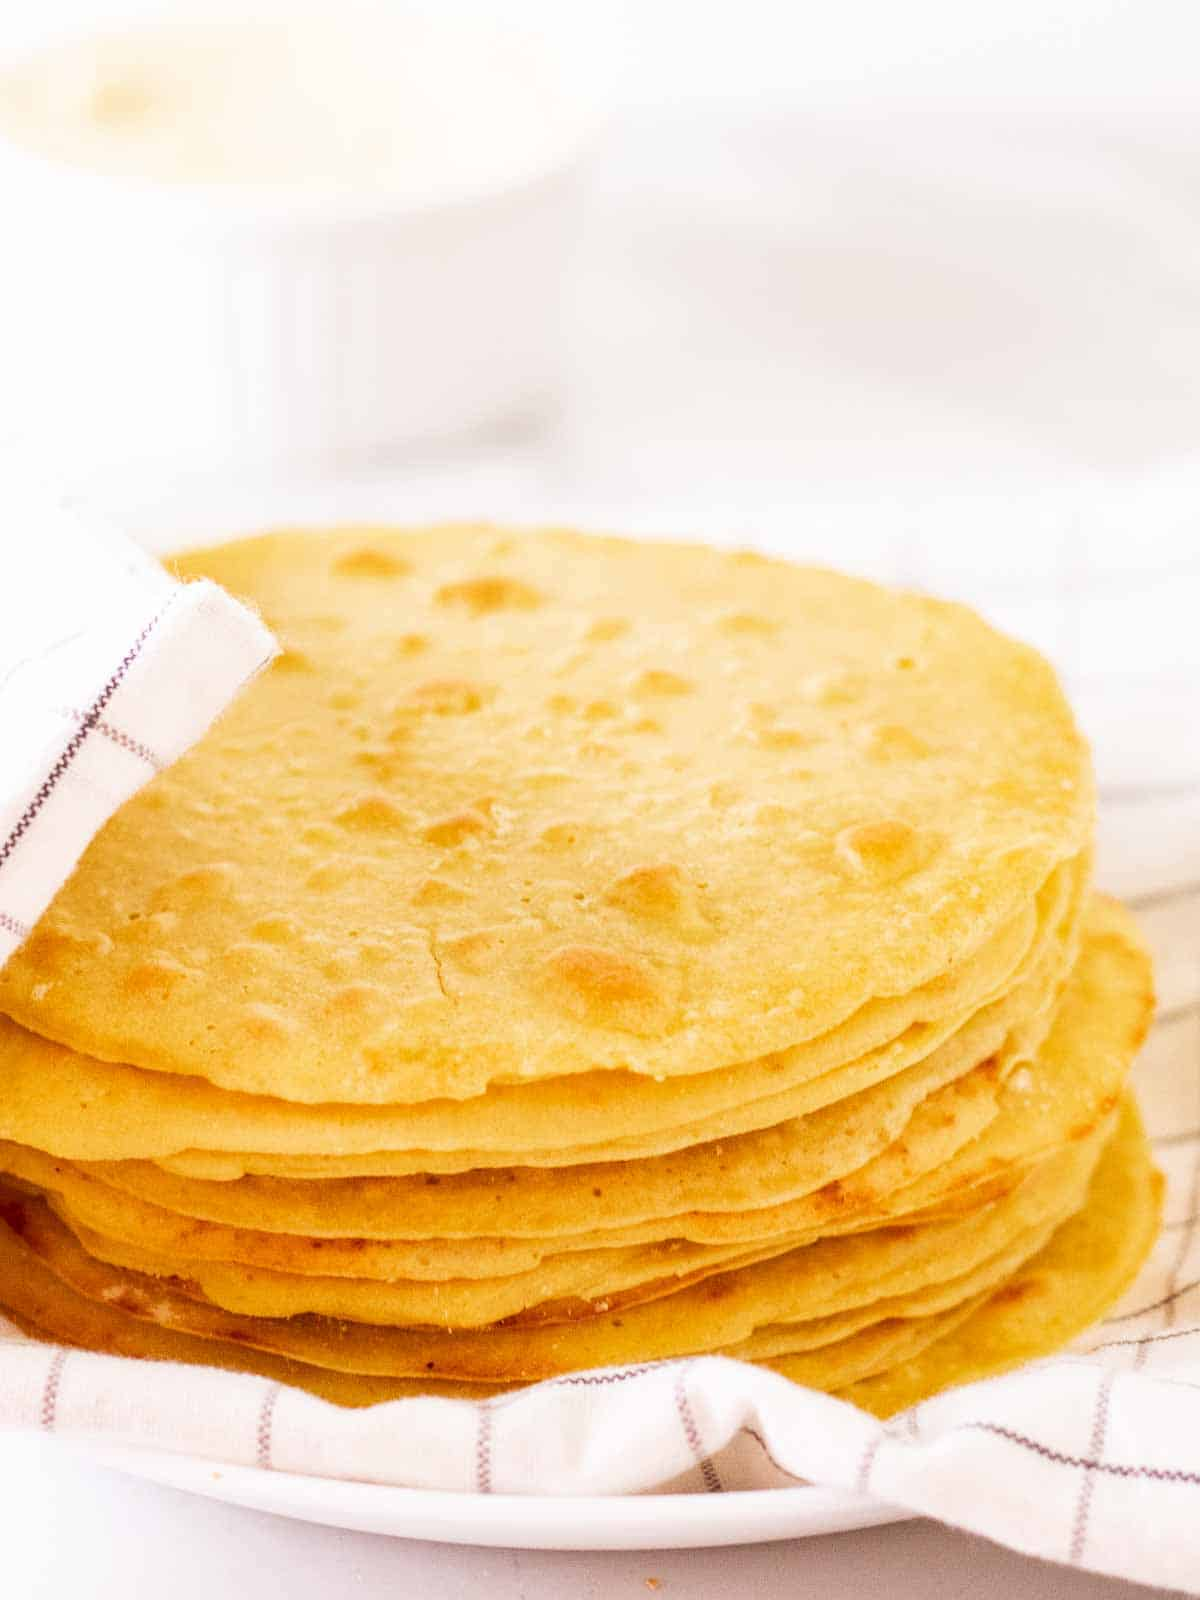 A stack of chickpea flour tortillas covered with a table cloth.